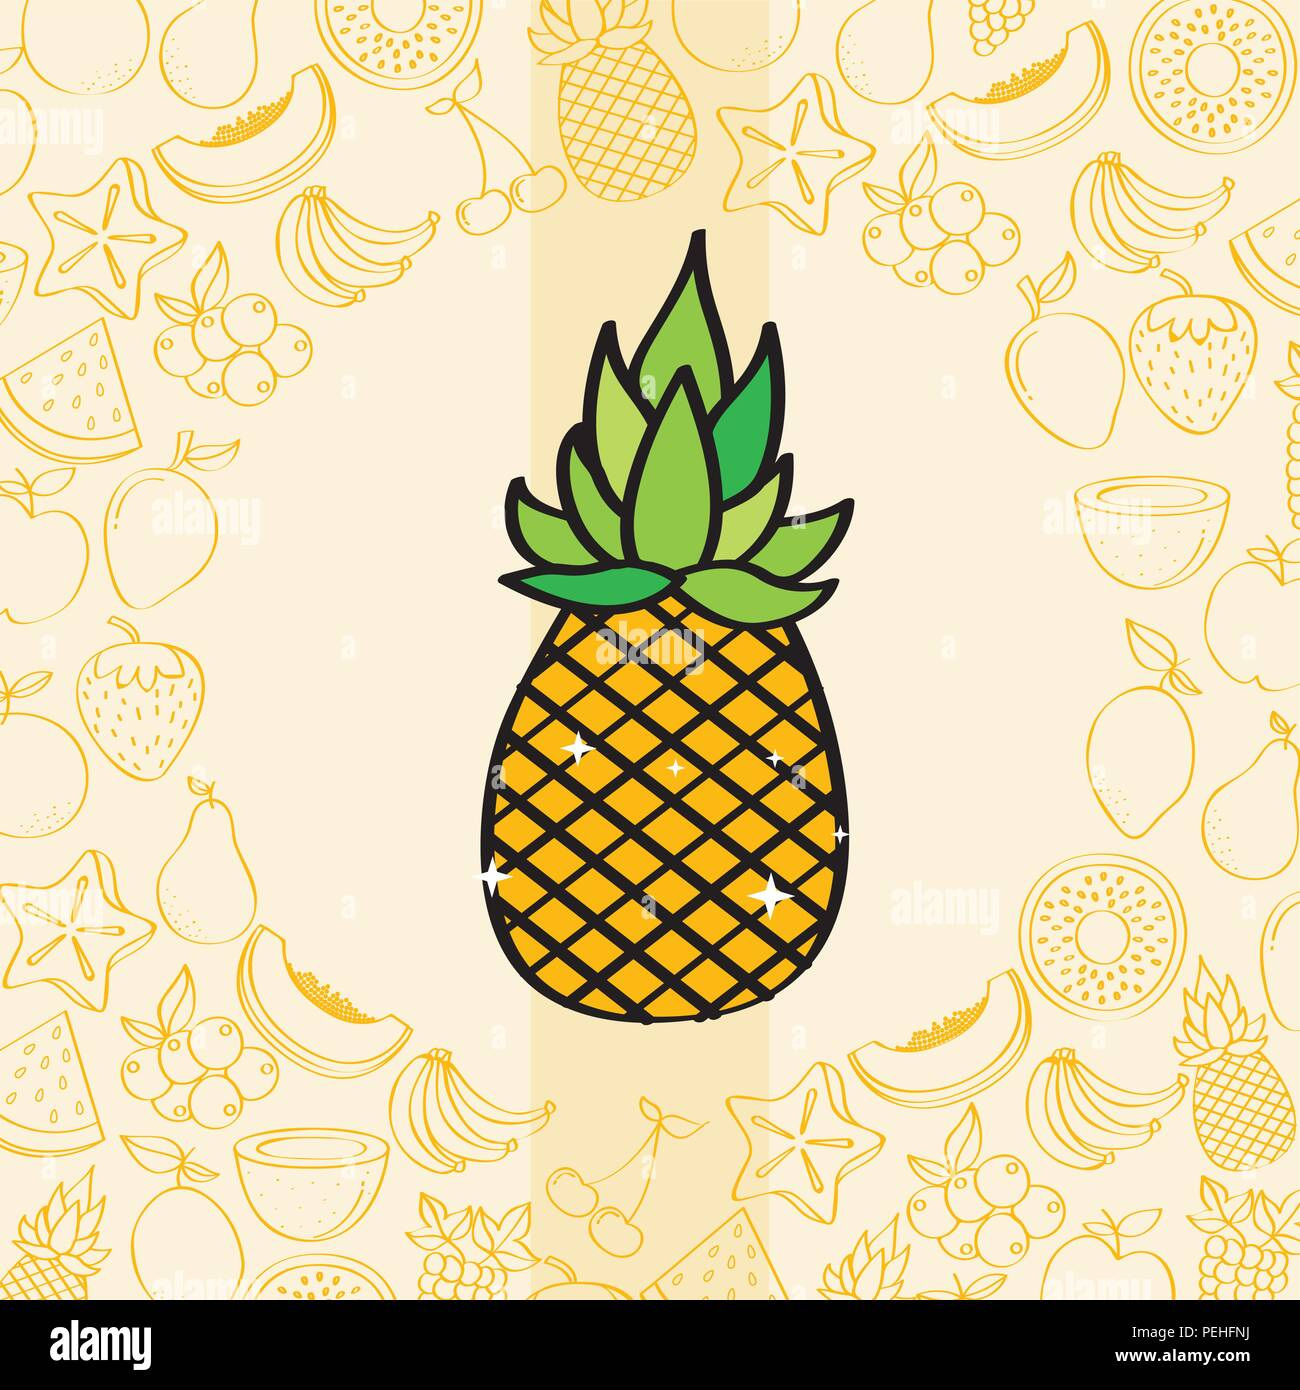 Pineapple Fruits Nutrition Background Pattern Drawing Color Stock Vector Image Art Alamy